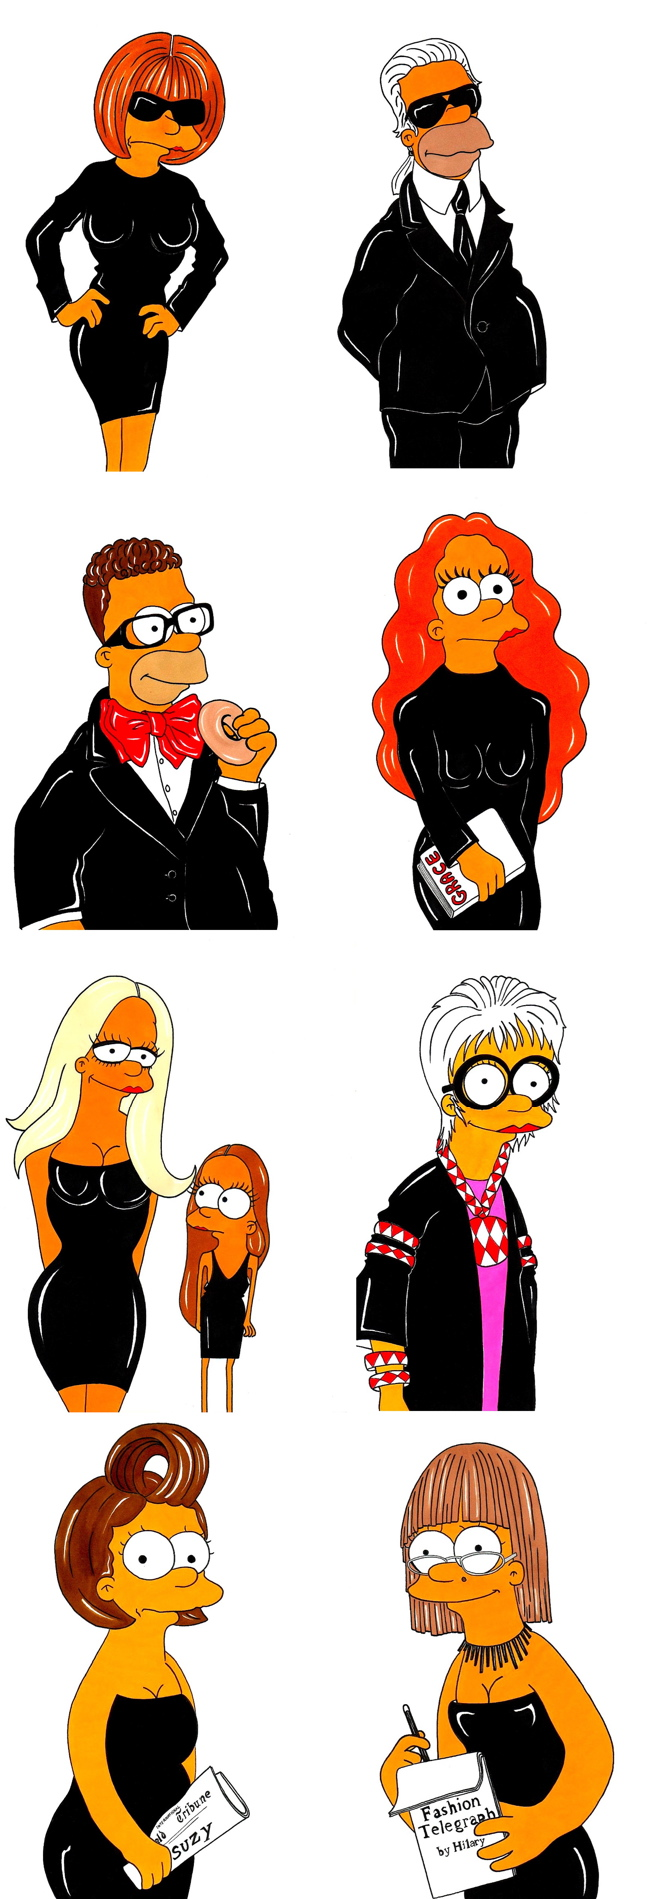 """FASHION SIMPSONS""  by Alexsandro Palombo"